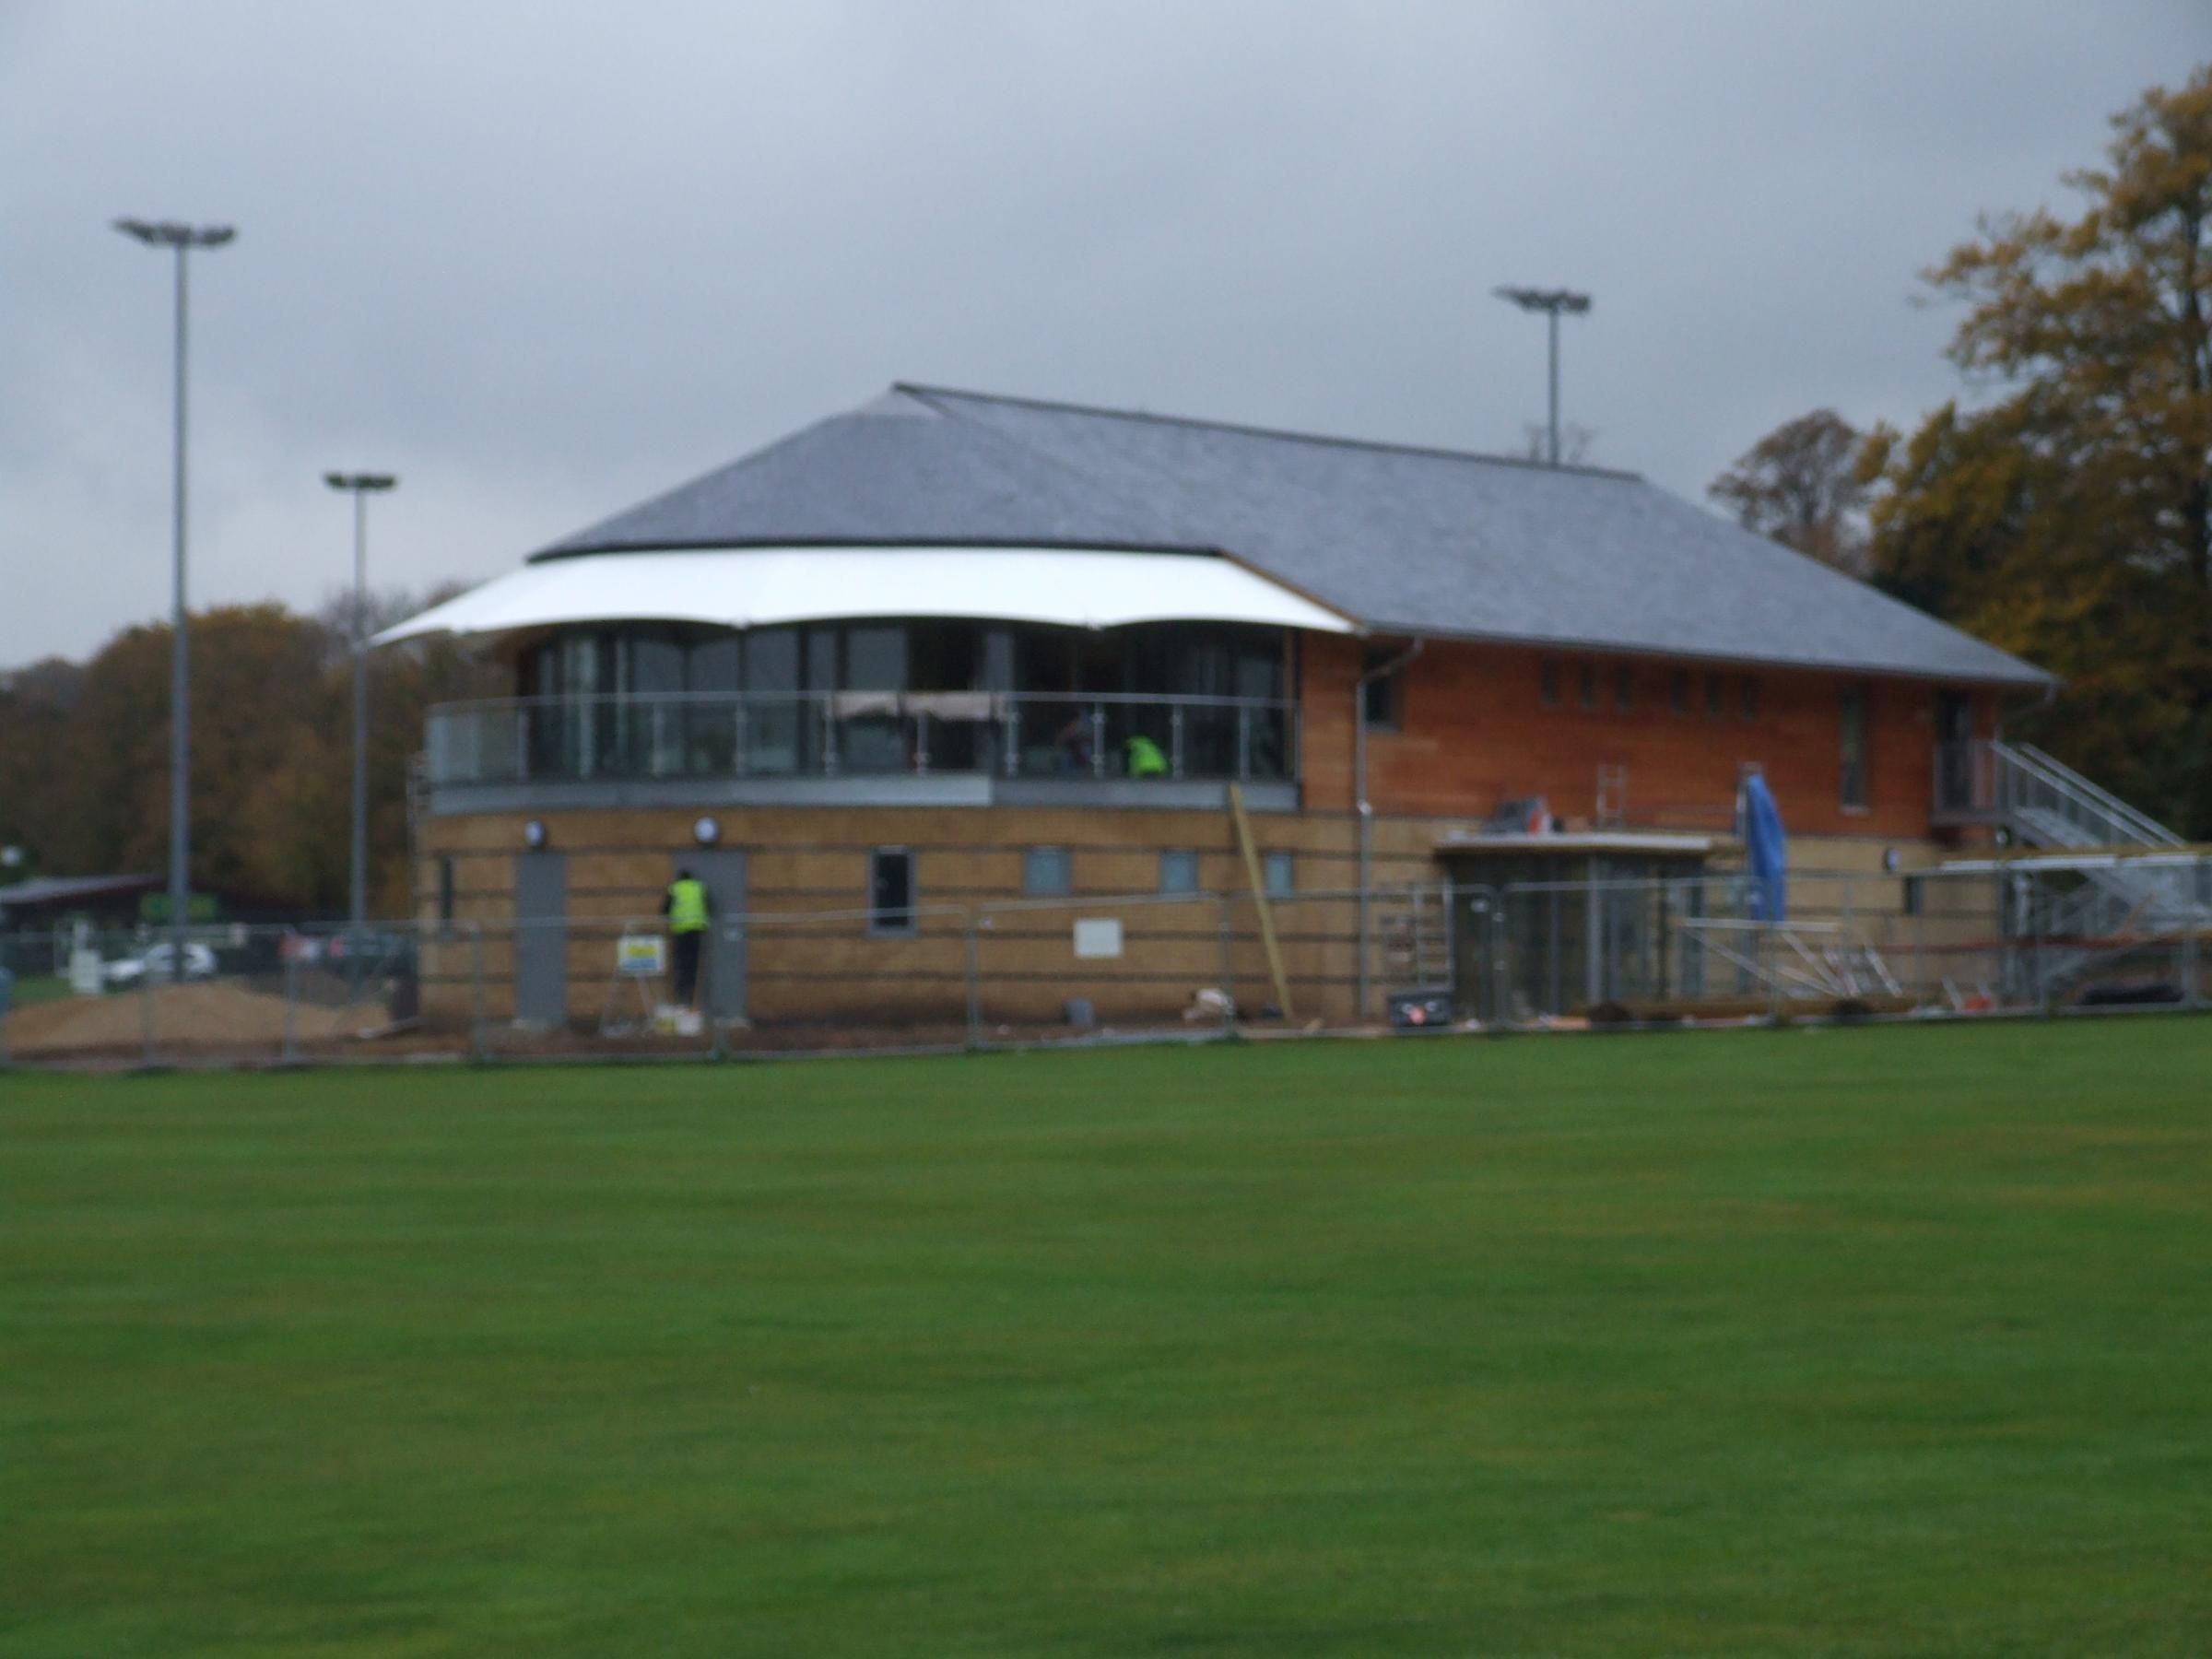 South Wilts Sports Club